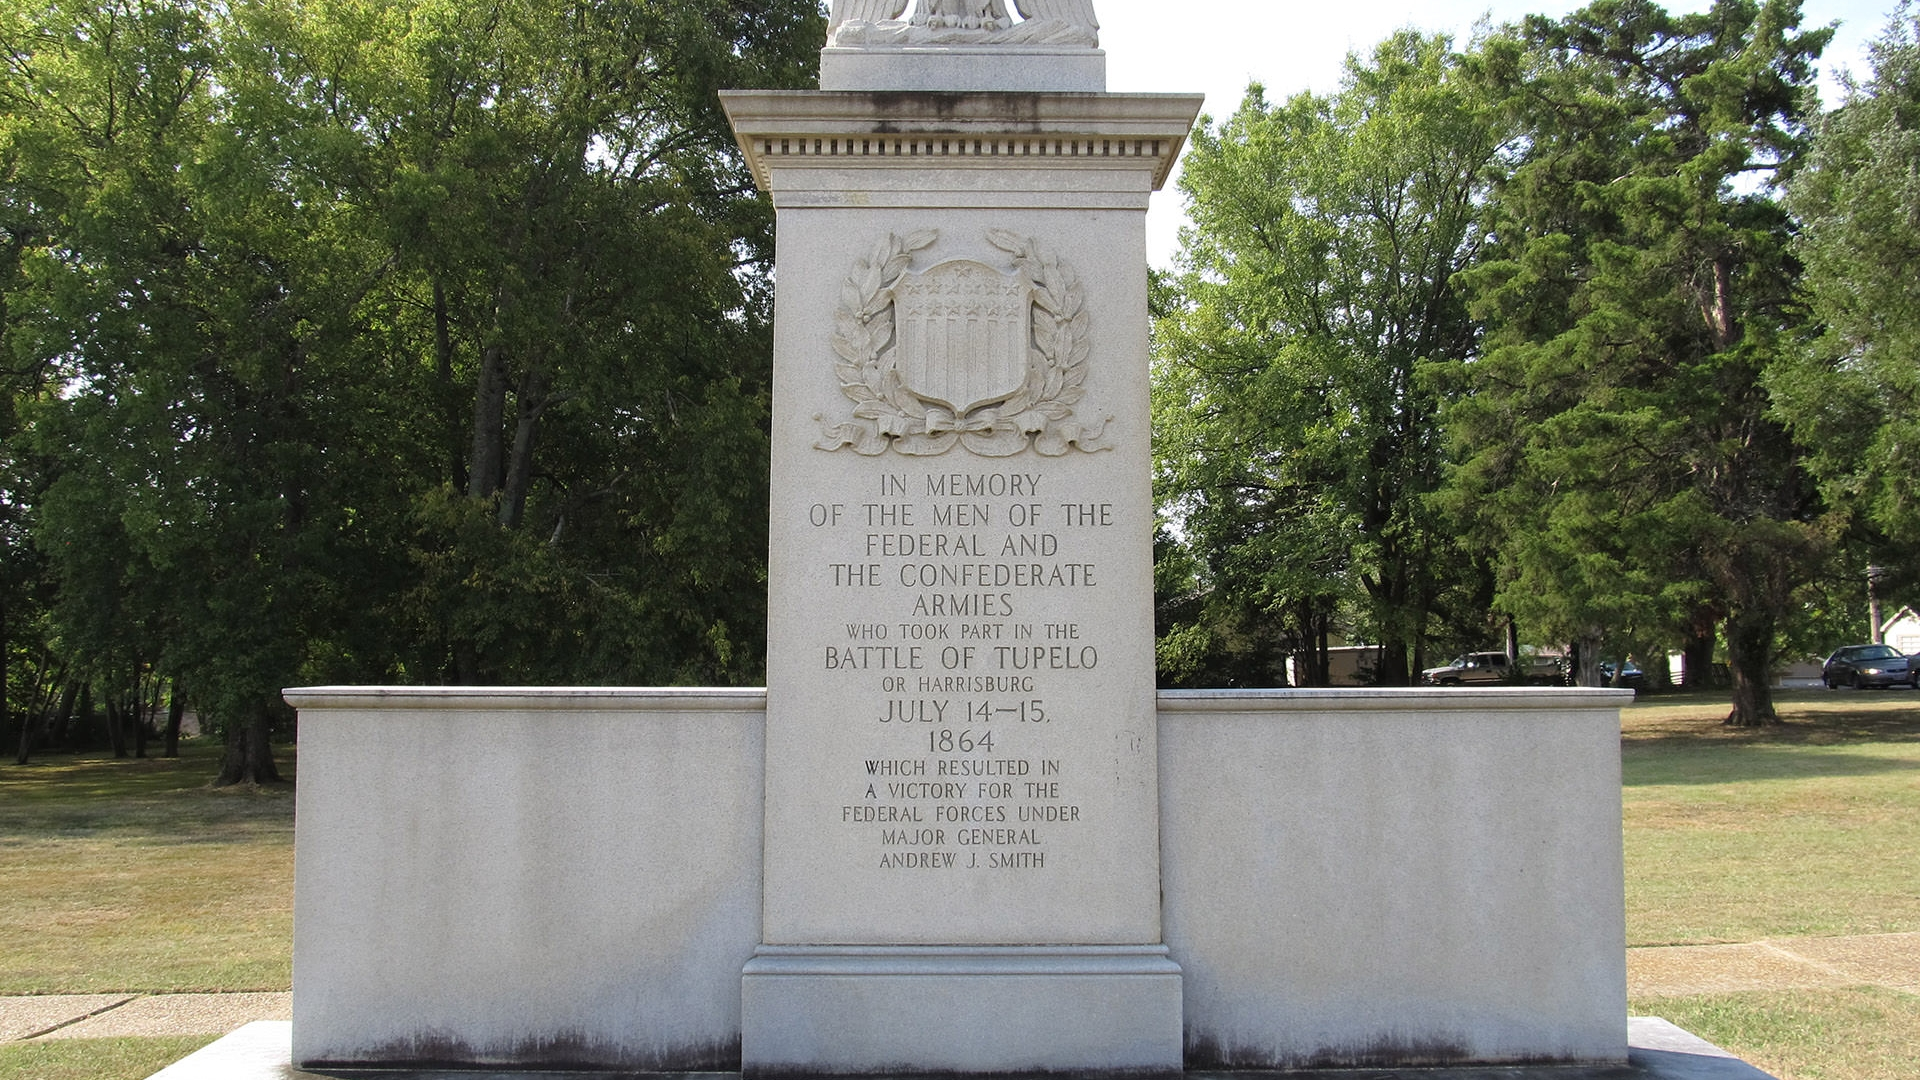 A close-up image of the monument